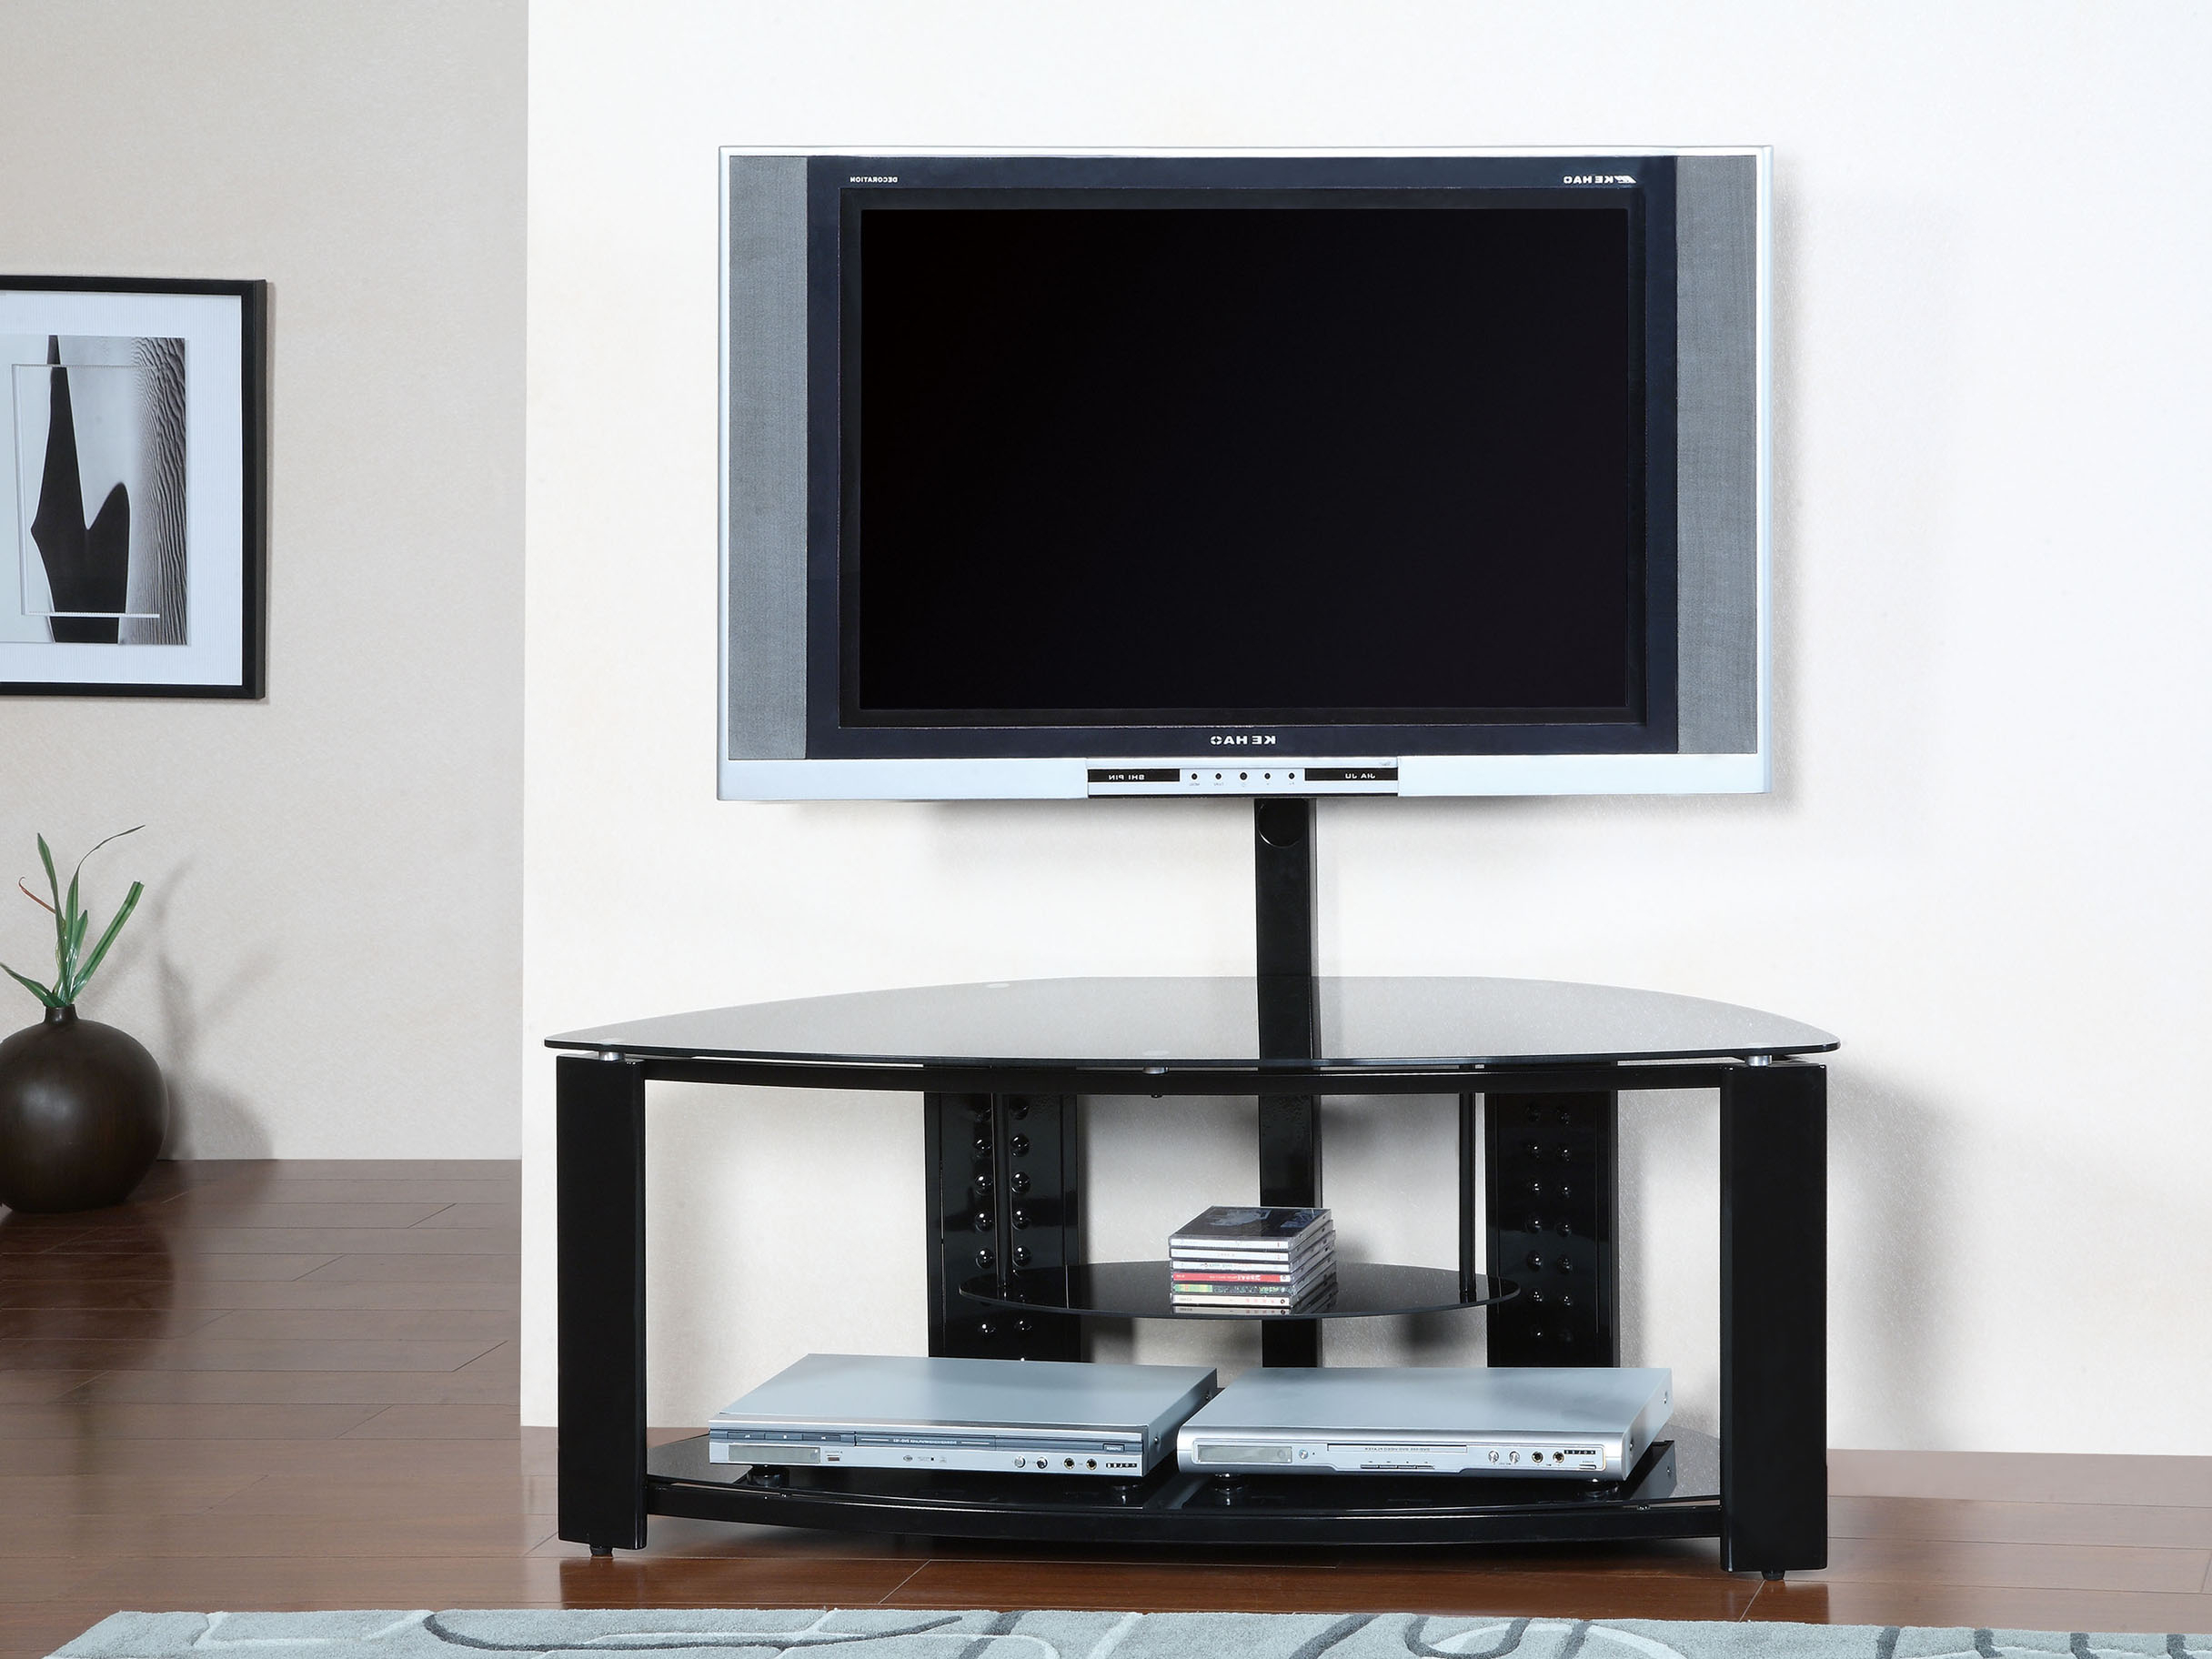 Best And Newest Acrylic Lucite Tv Stand On Wheels Clear Trays With – Buyouapp With Acrylic Tv Stands (View 8 of 20)